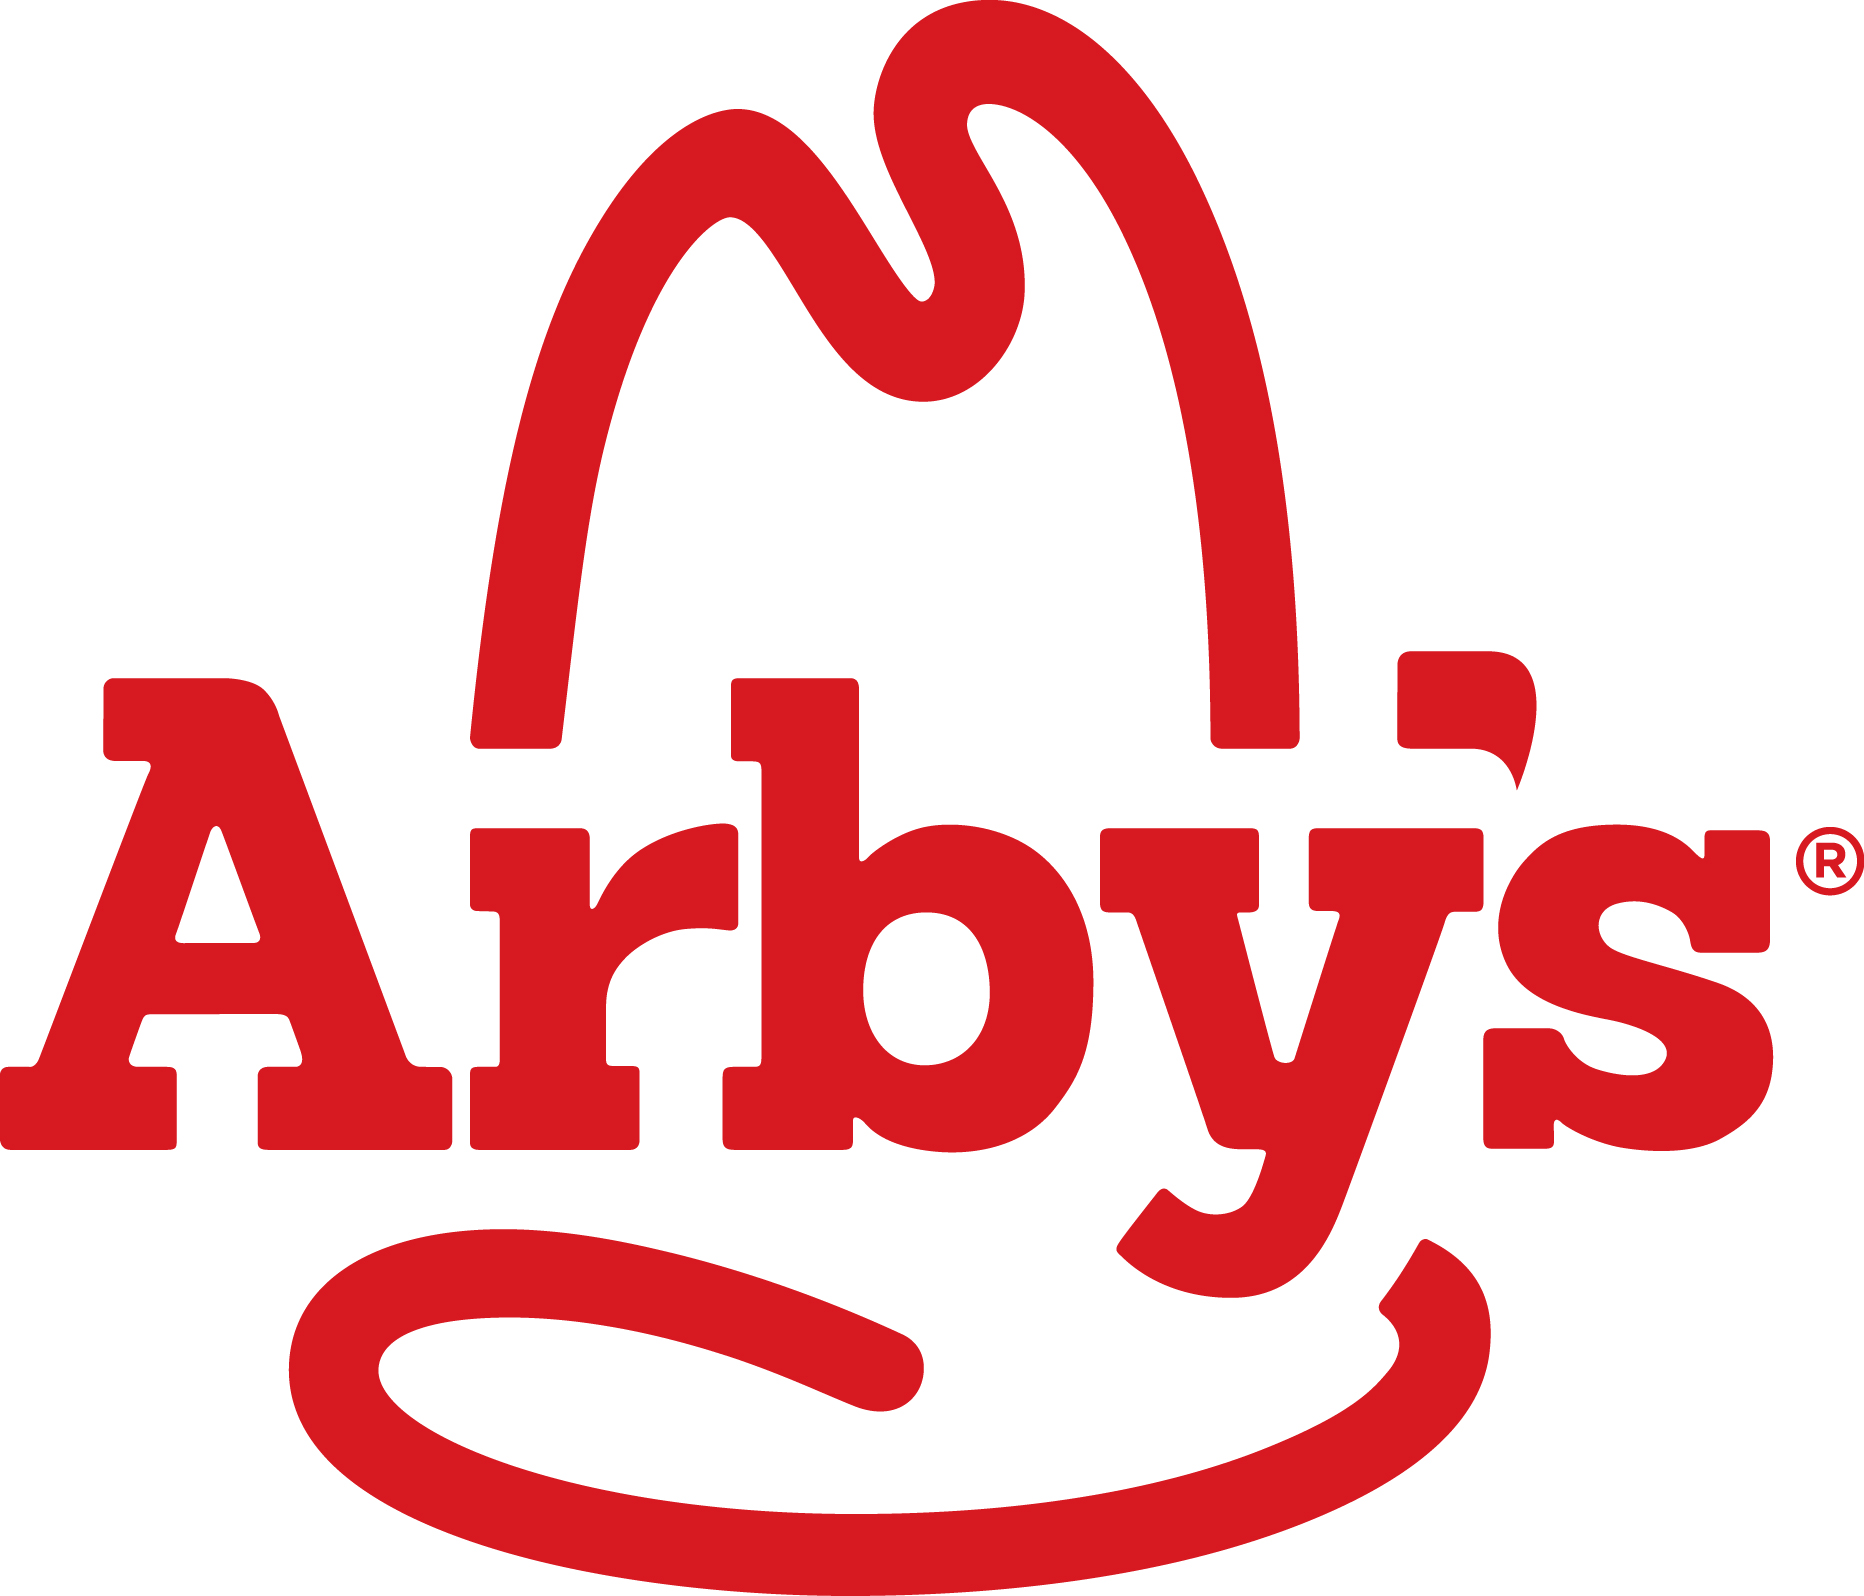 Image credit: Arby's